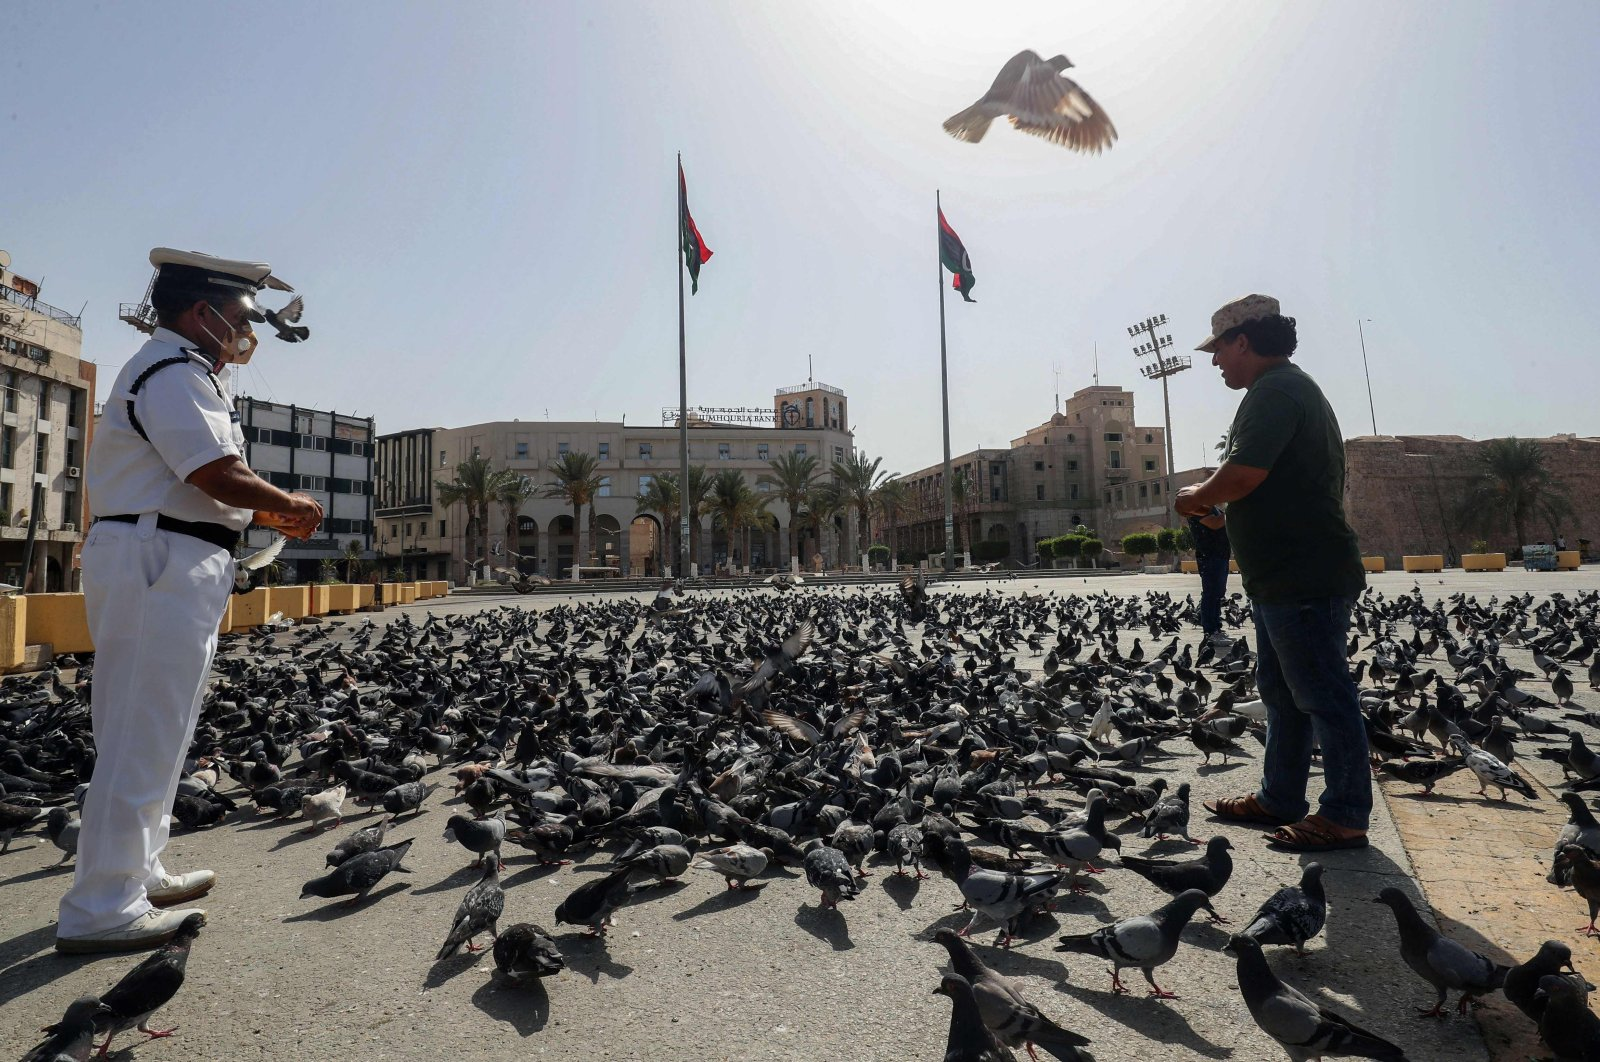 Libyan men feed pigeons in an empty Martyrs square in downtown Tripoli, Libya, Aug, 7, 2021. (AFP Photo)